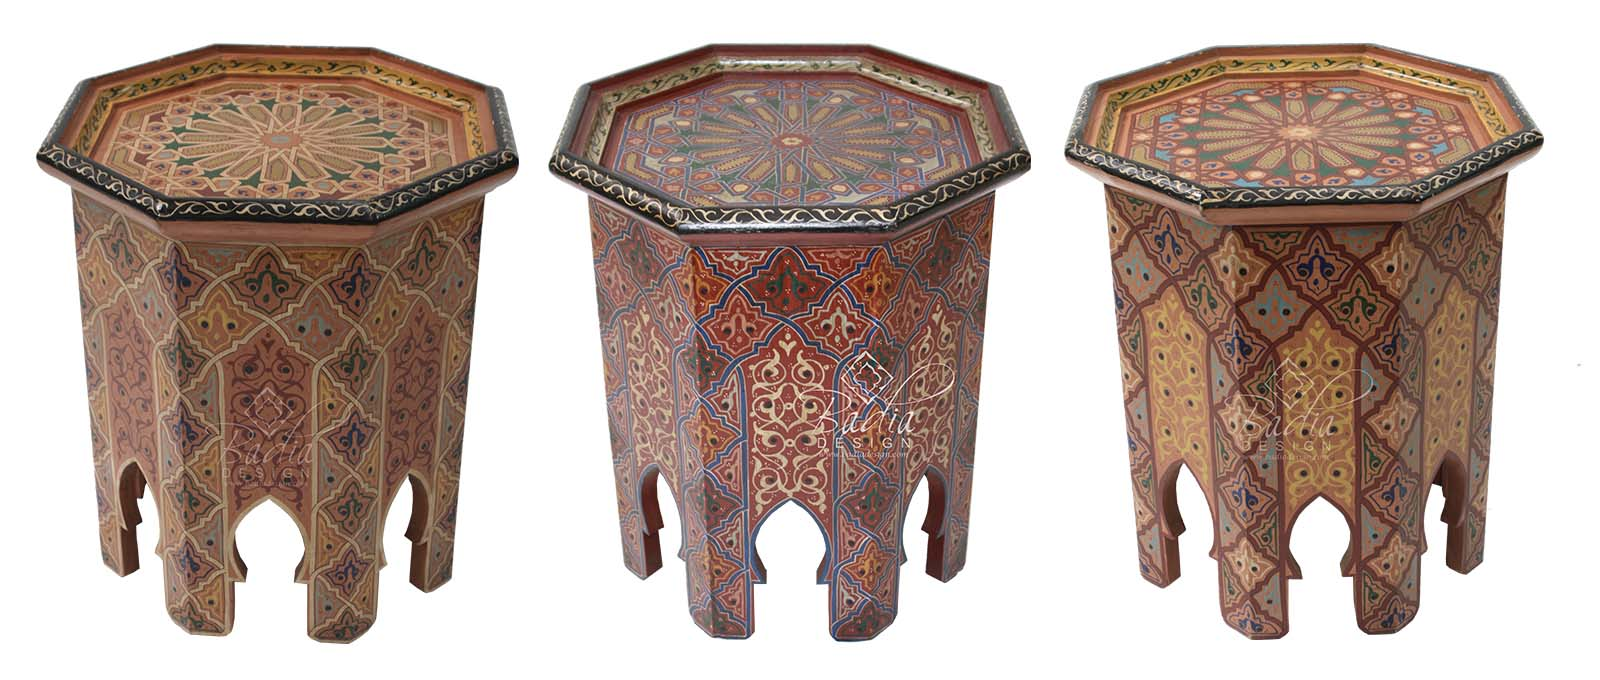 moroccan-hand-painted-side-table-hp300.jpg